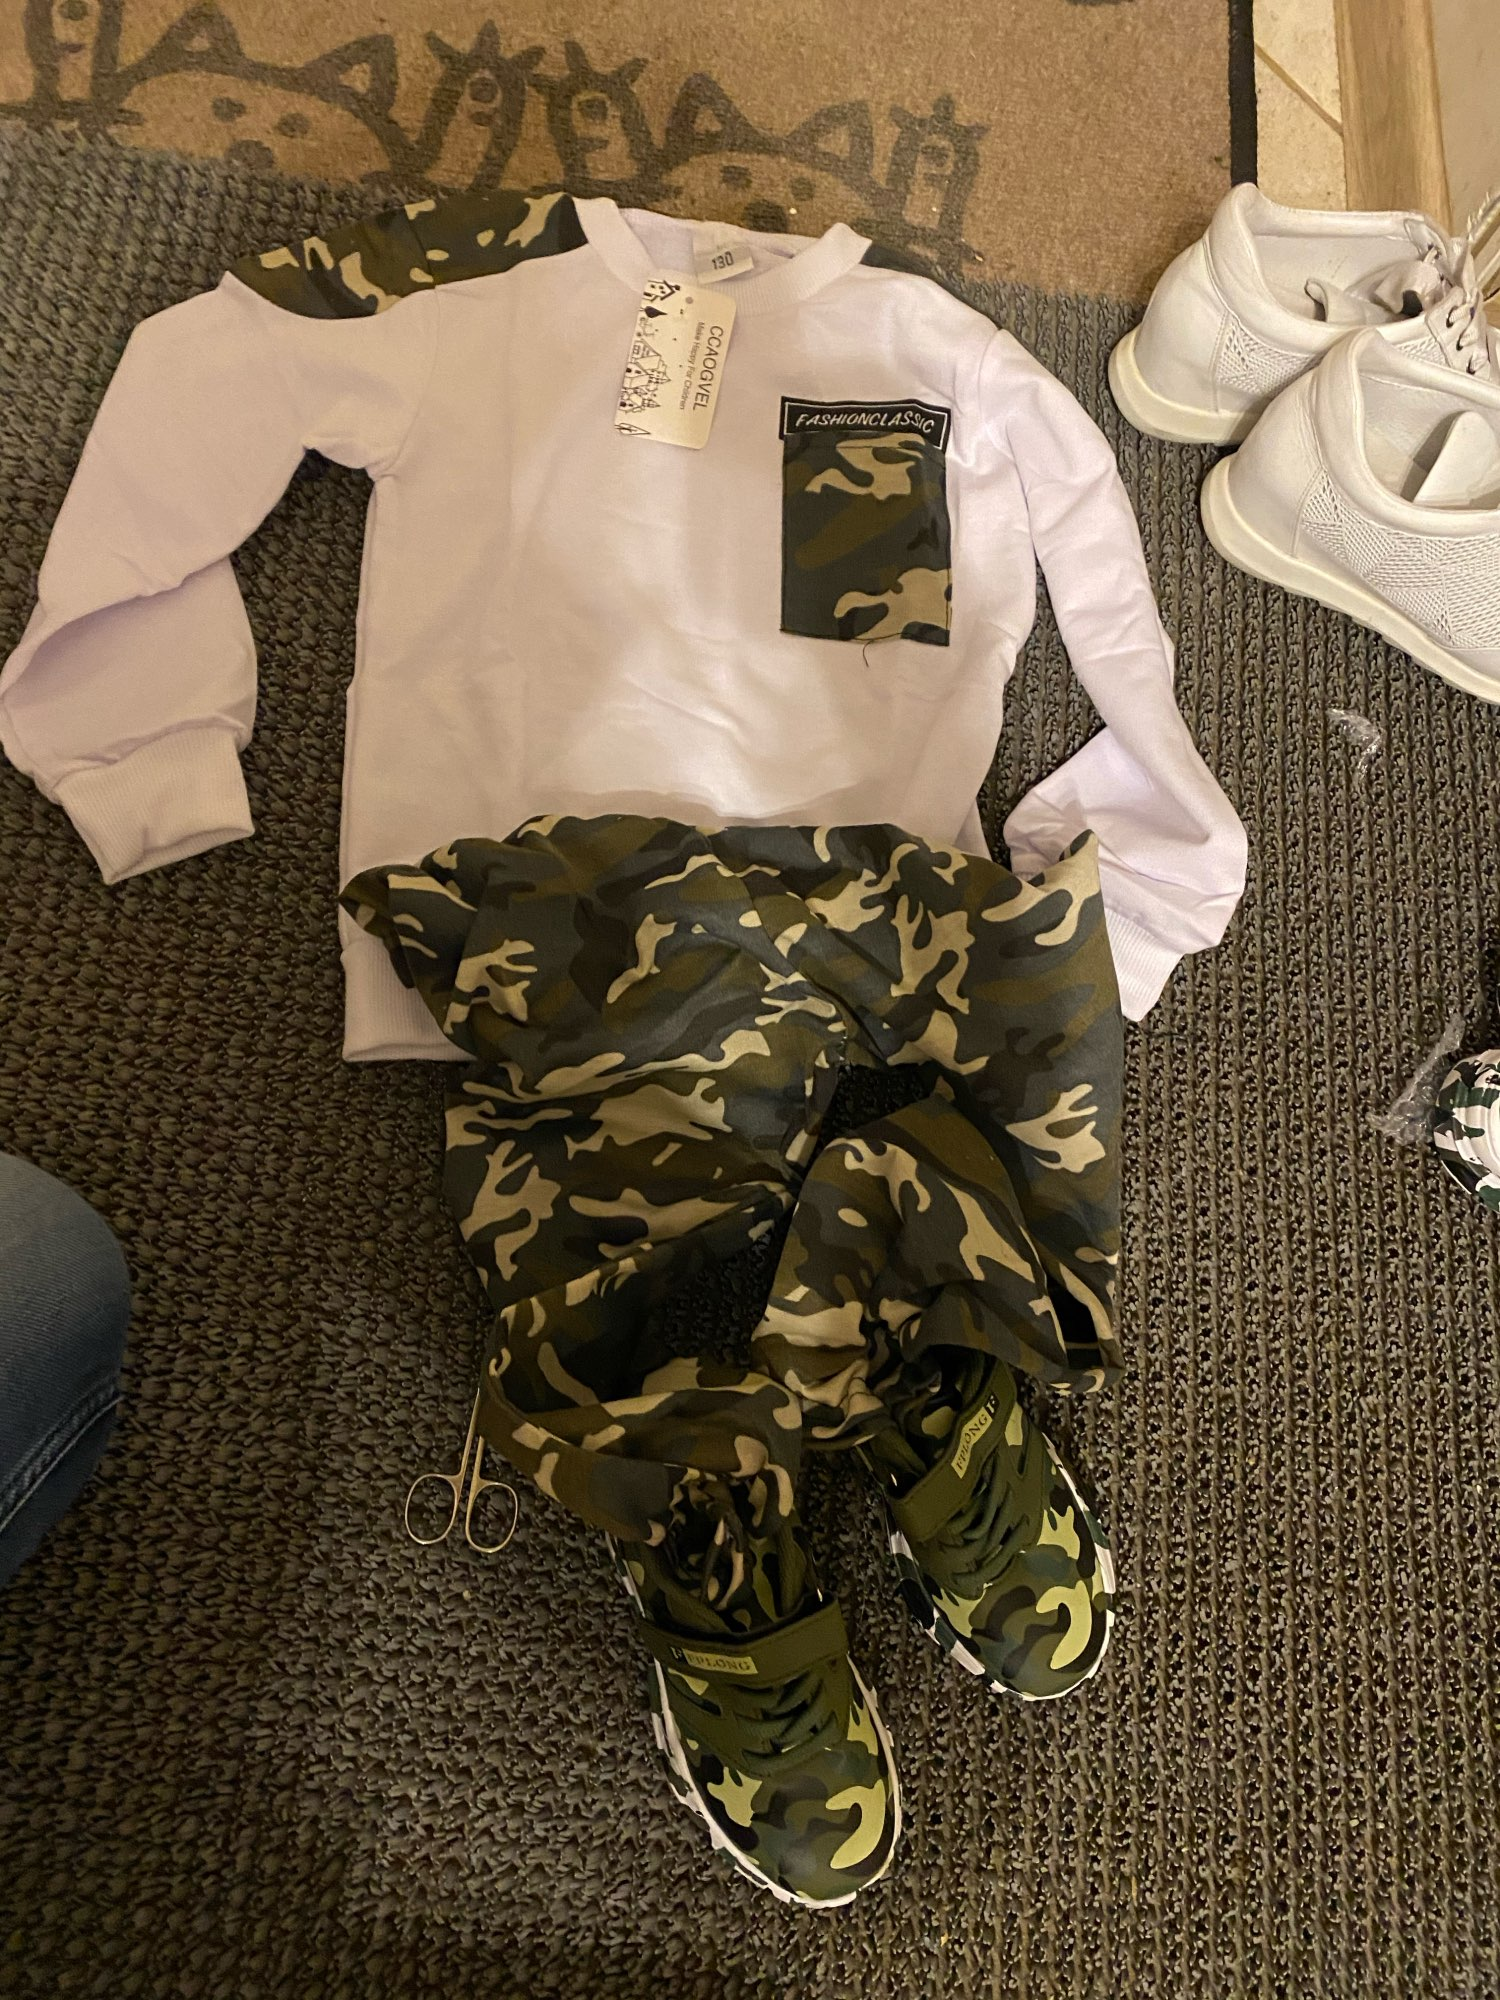 2019 Brand New 2-9Y Toddler Kids Baby Boy Clothing Set Pocket Pullover Tops Camo Pant 2PCS Outfits Tracksuit Long Sleeve Outfits photo review